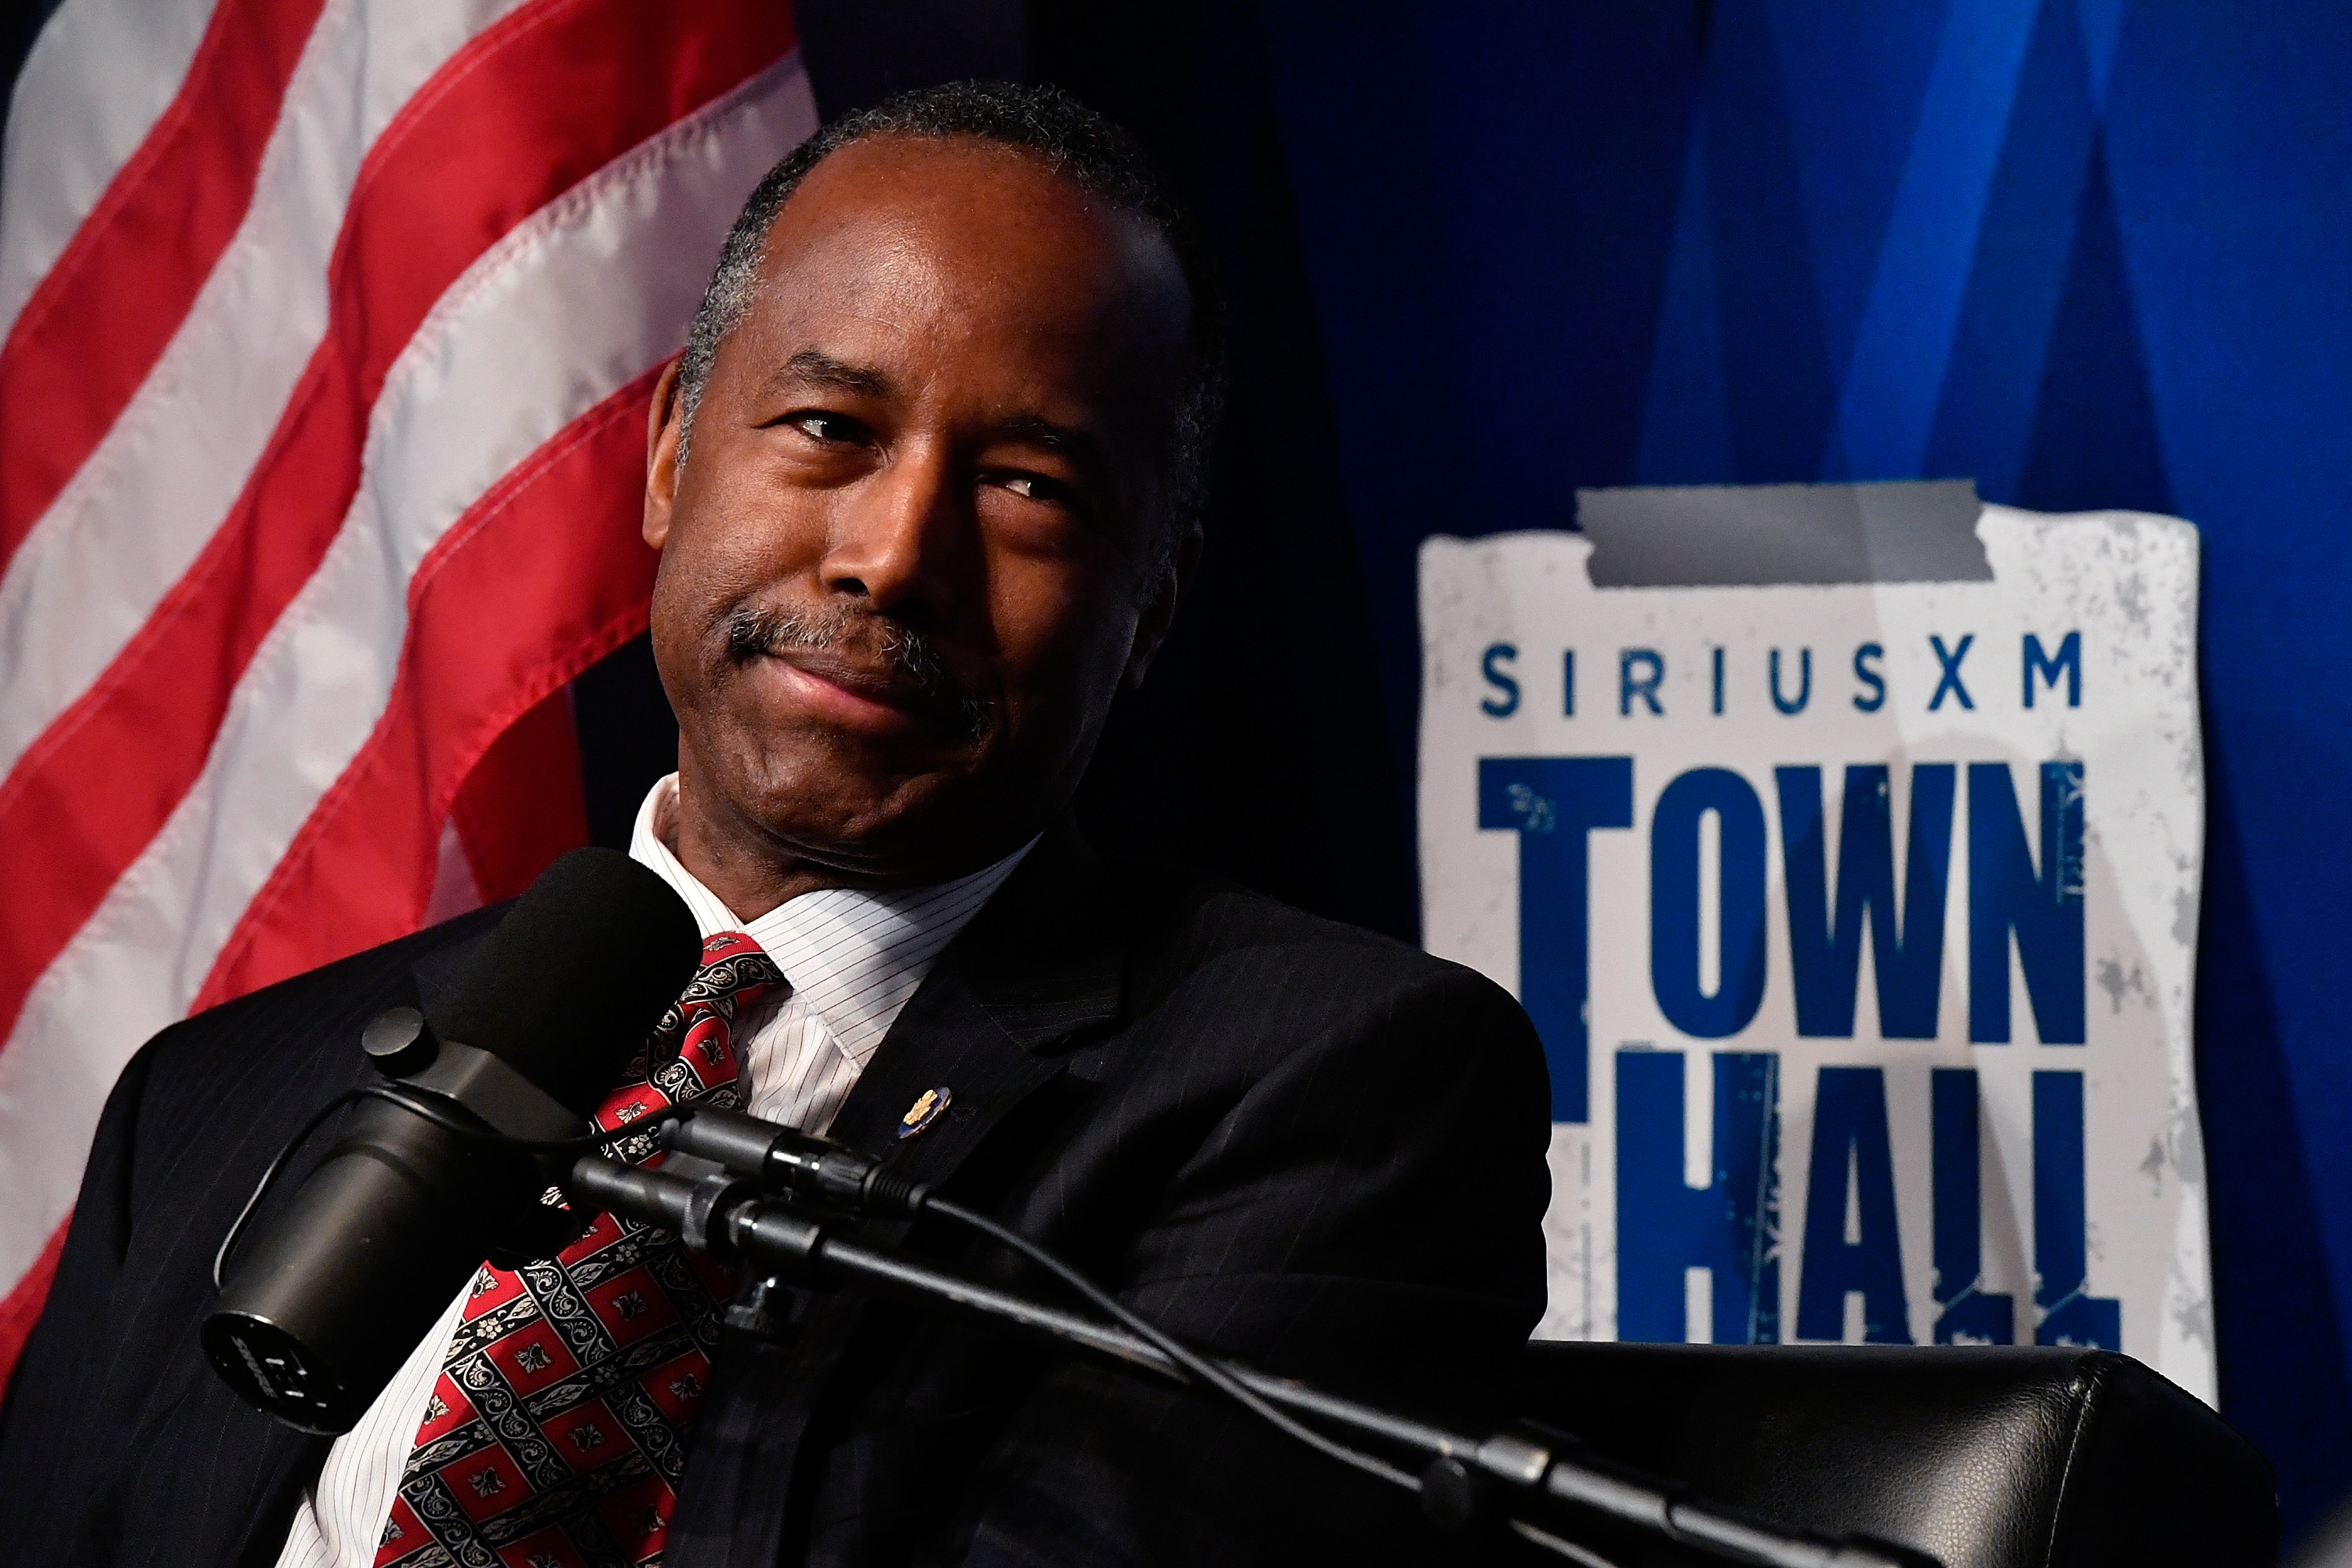 WASHINGTON, DC - MAY 23: United States Secretary of Housing and Urban Development Dr. Ben Carson appears on SiriusXM's Town Hall hosted by Armstrong Williams at SiriusXM DC Performance Space on May 23, 2017 in Washington, DC. (Photo by Larry French/Getty Images for SiriusXM)